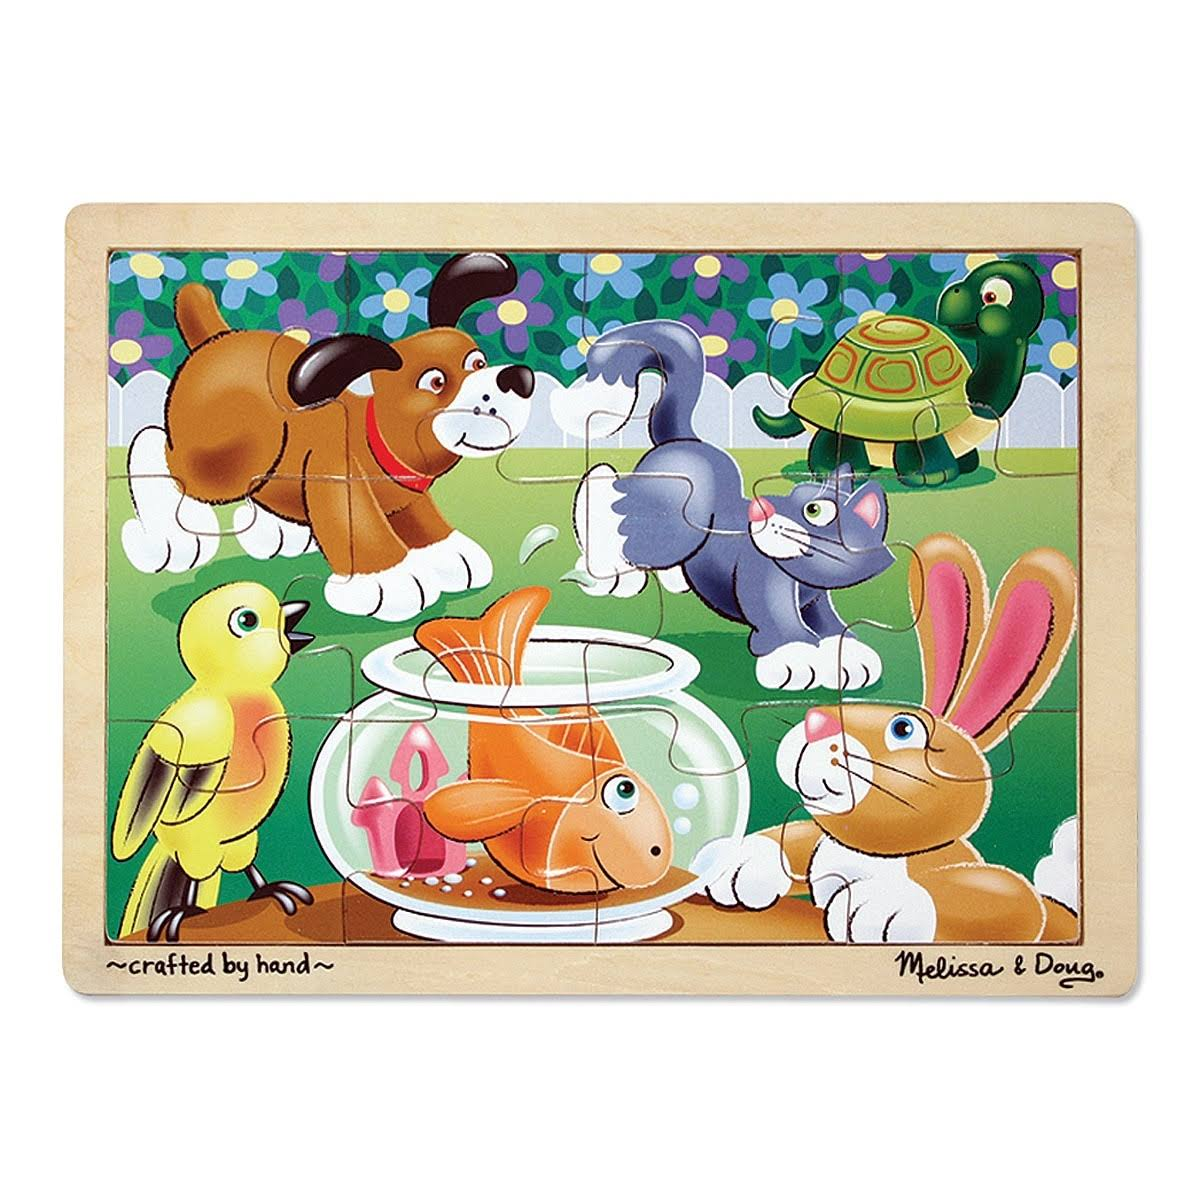 Melissa and Doug Wooden Jigsaw Puzzle - Playful Pets, 12pcs